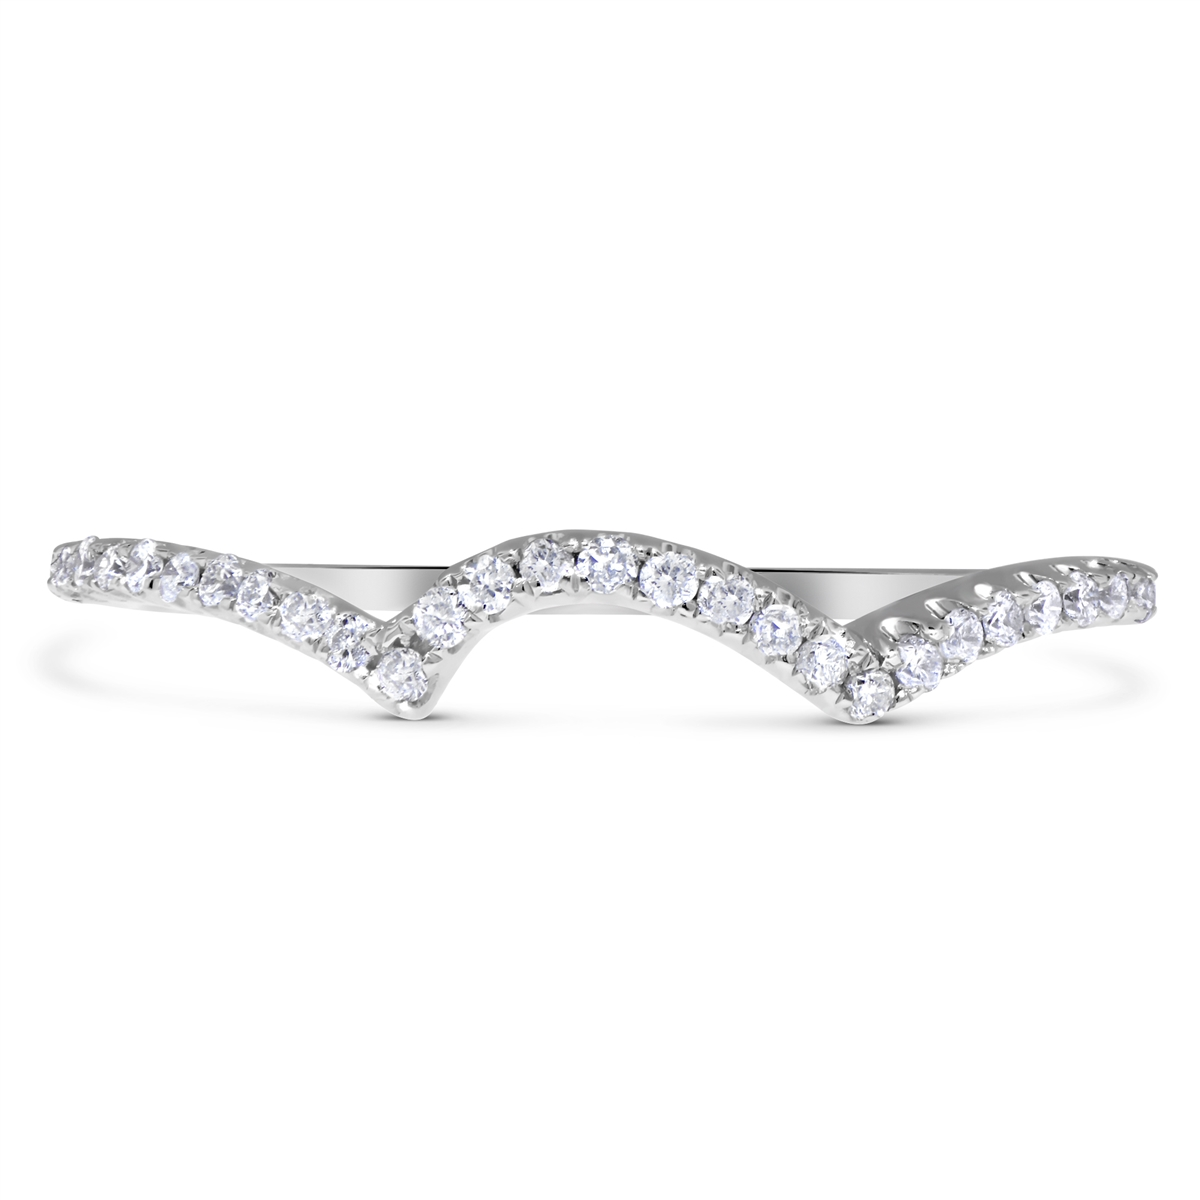 shank jewelry products pave wedding coffin moiss canadian diamonds eleanor halo band bands mod kristin diamond pav